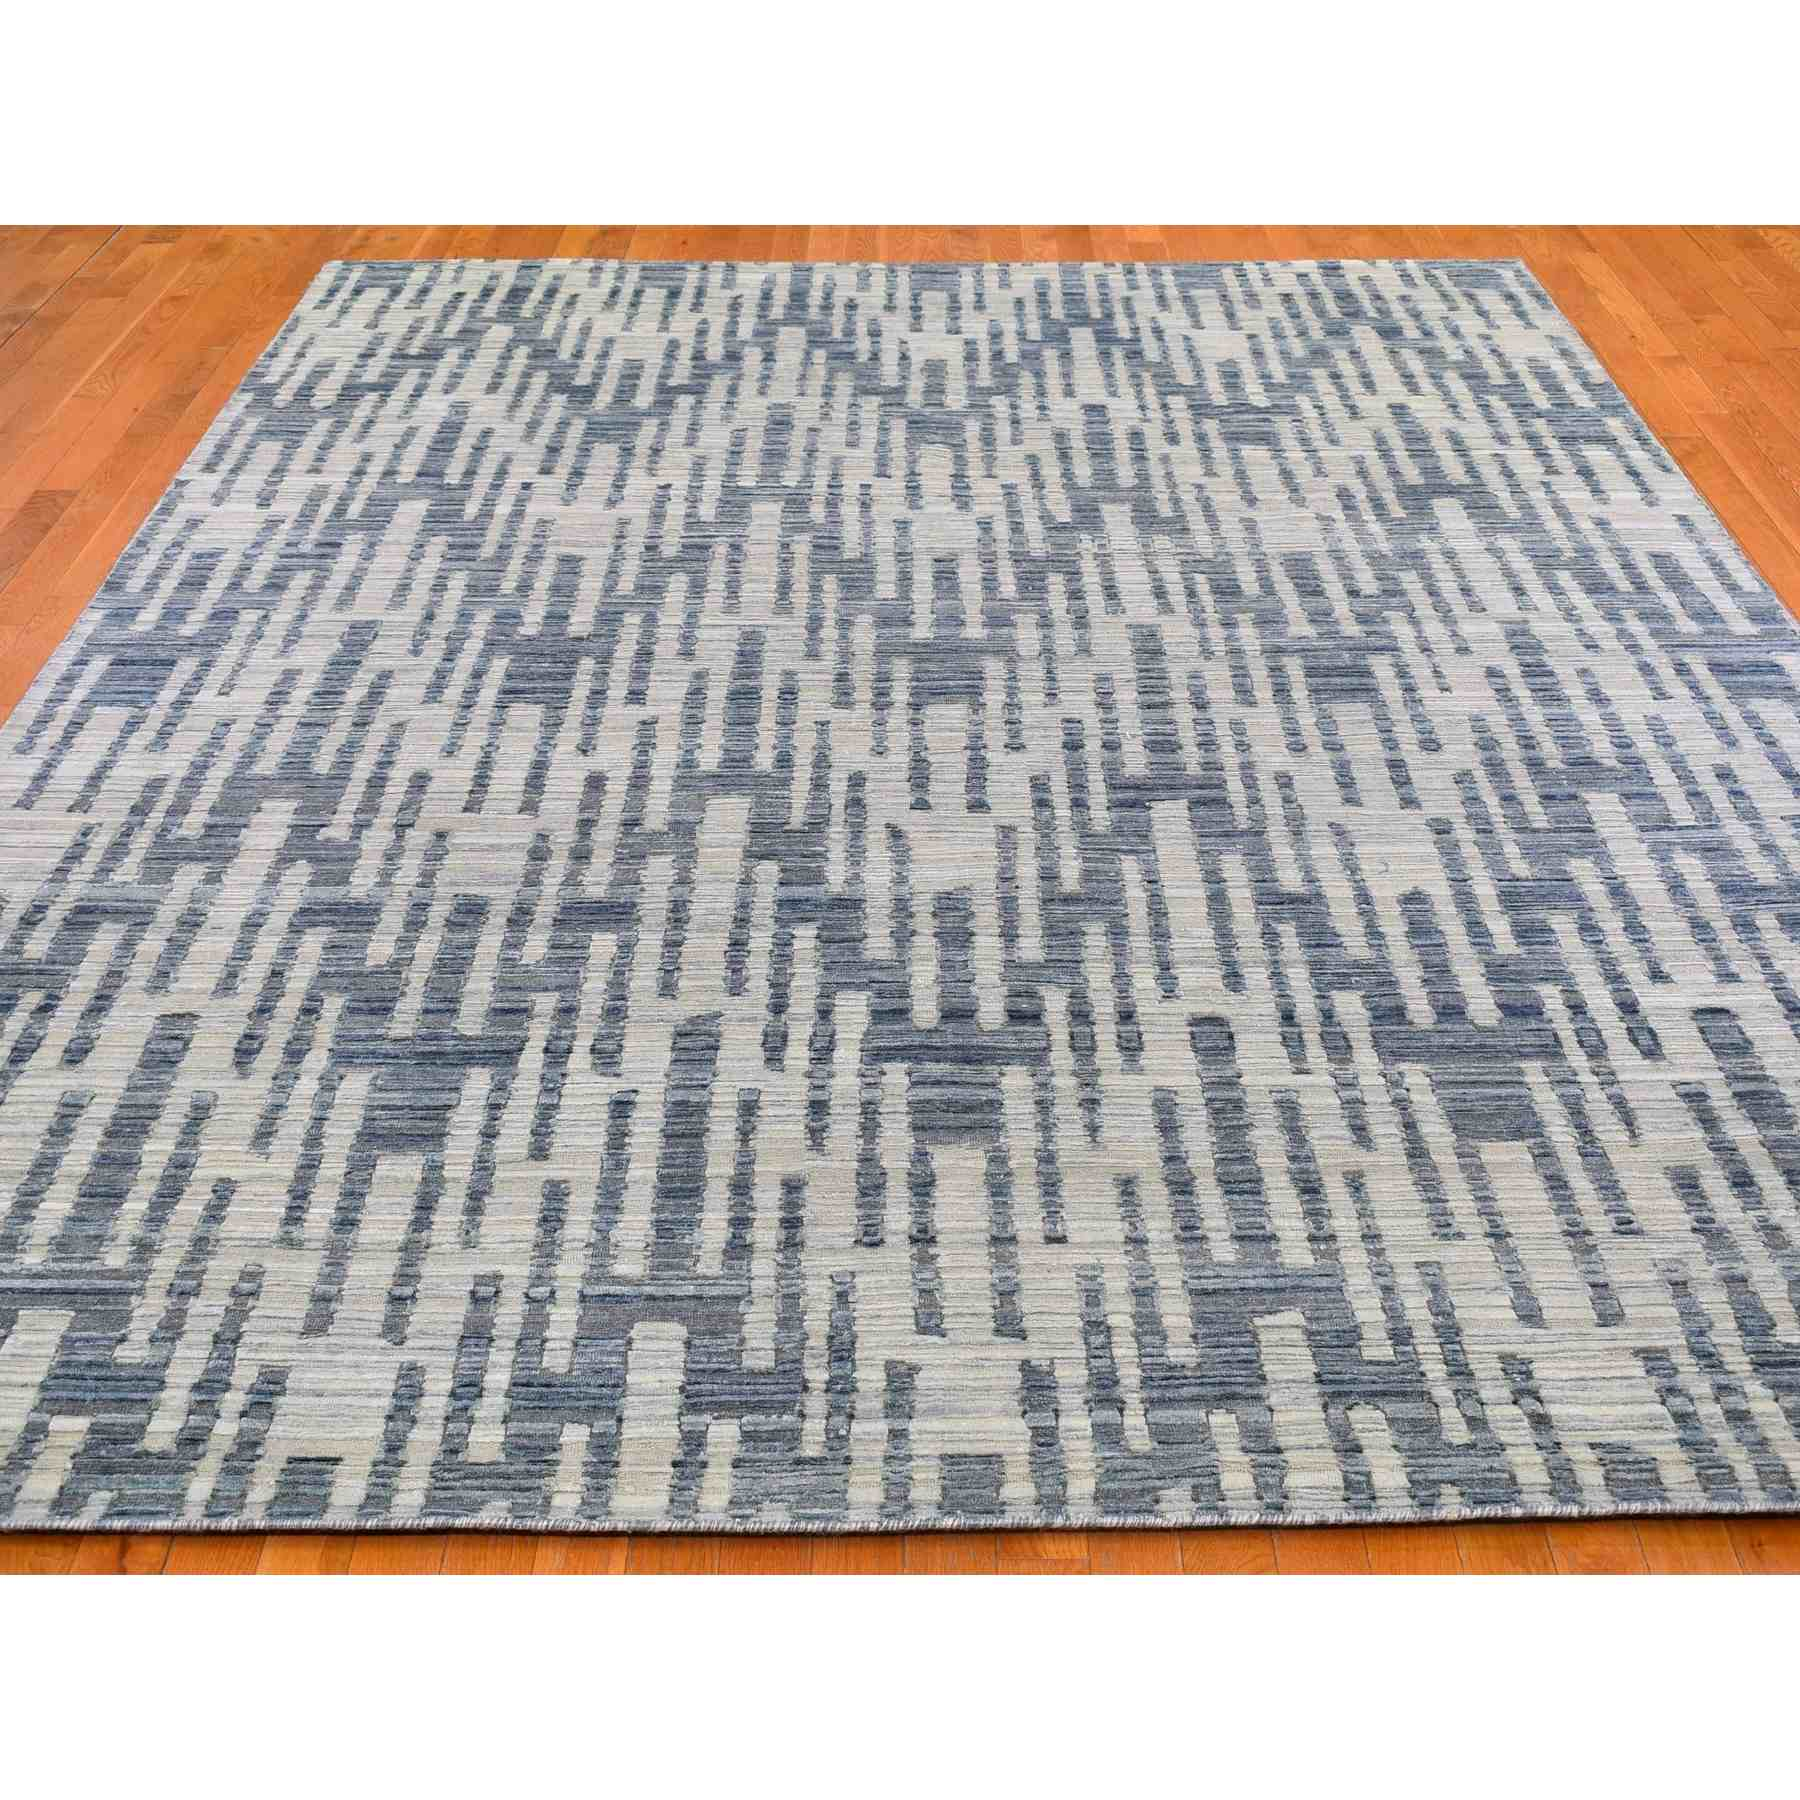 Modern-and-Contemporary-Hand-Knotted-Rug-332355